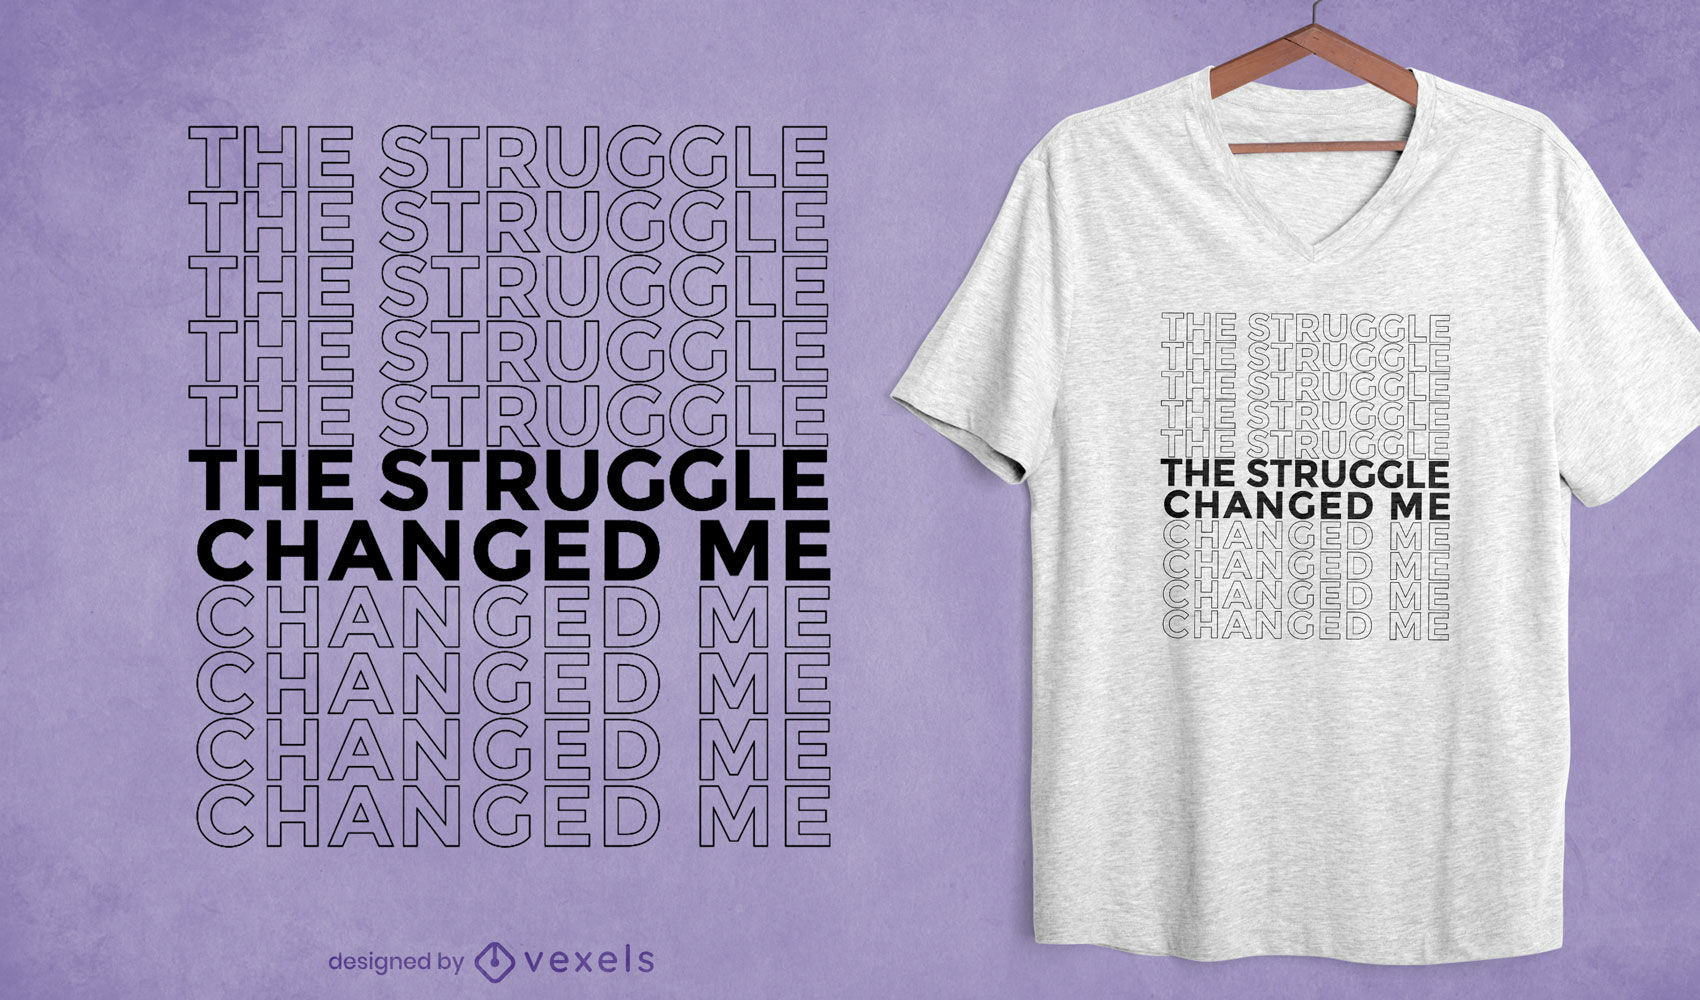 Struggle changed me quote t-shirt design